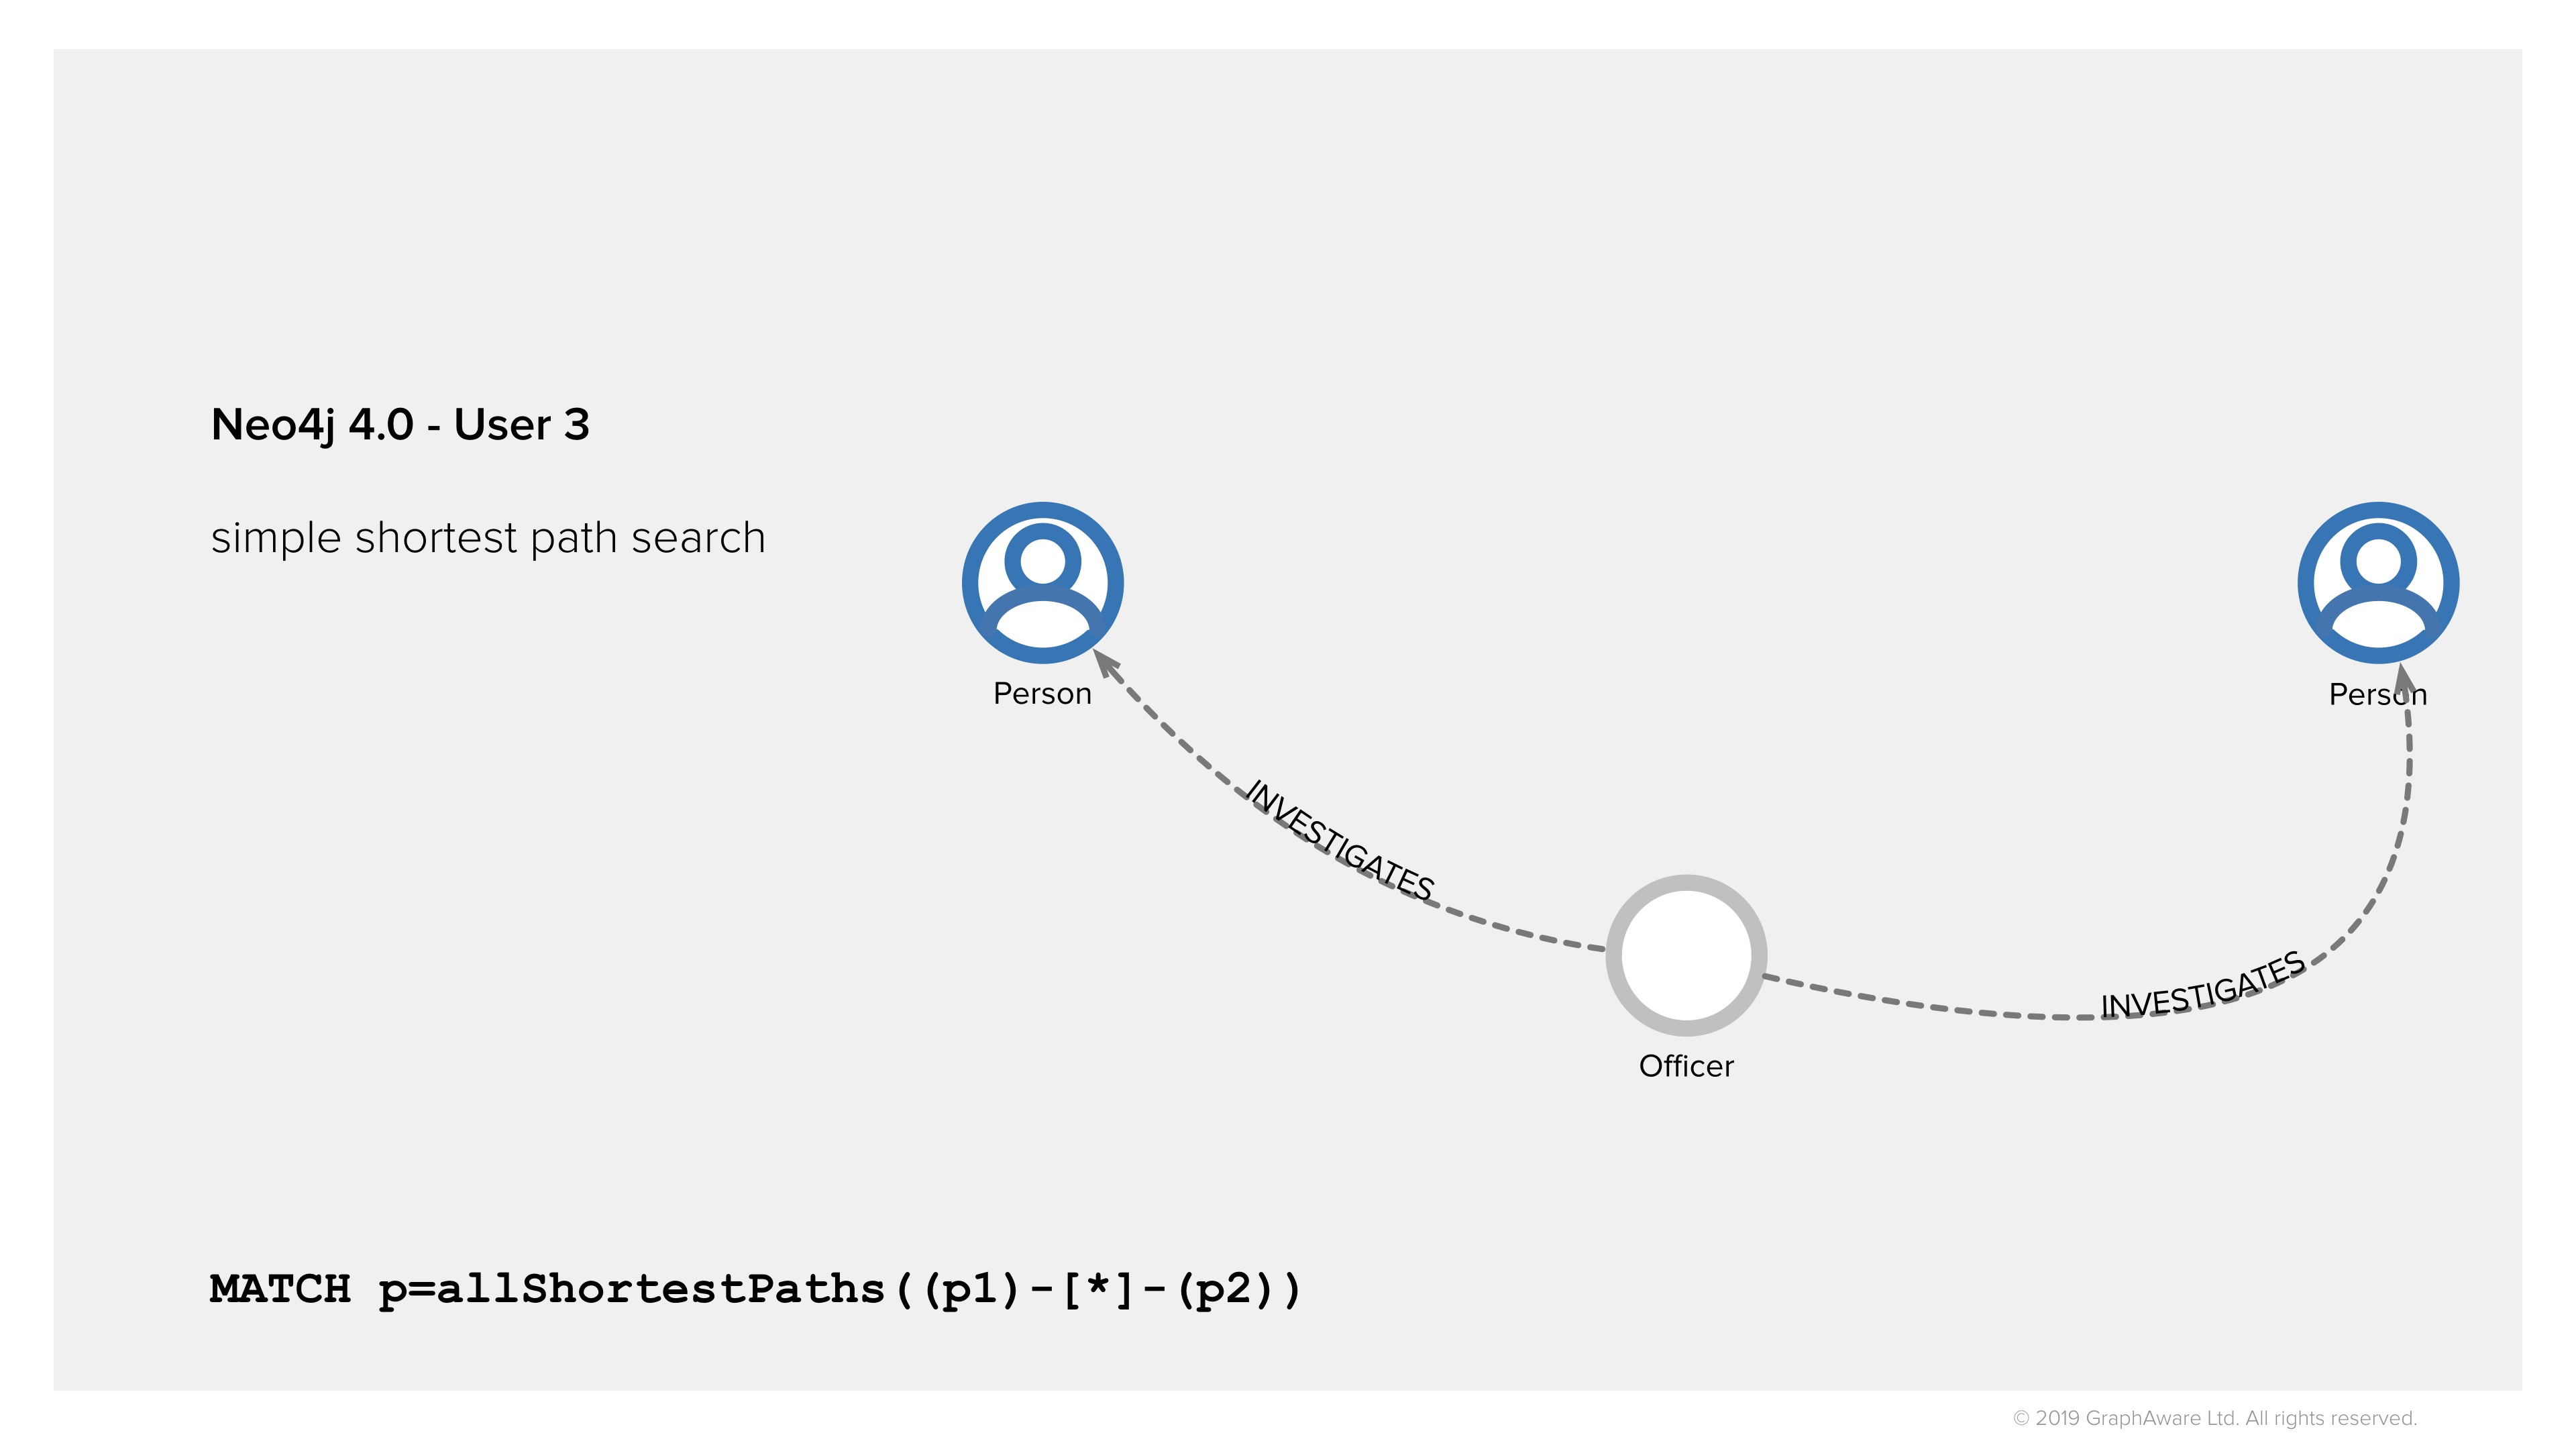 Find shortest paths in Neo4j 4.0 for law enforcement - access control, traverse only